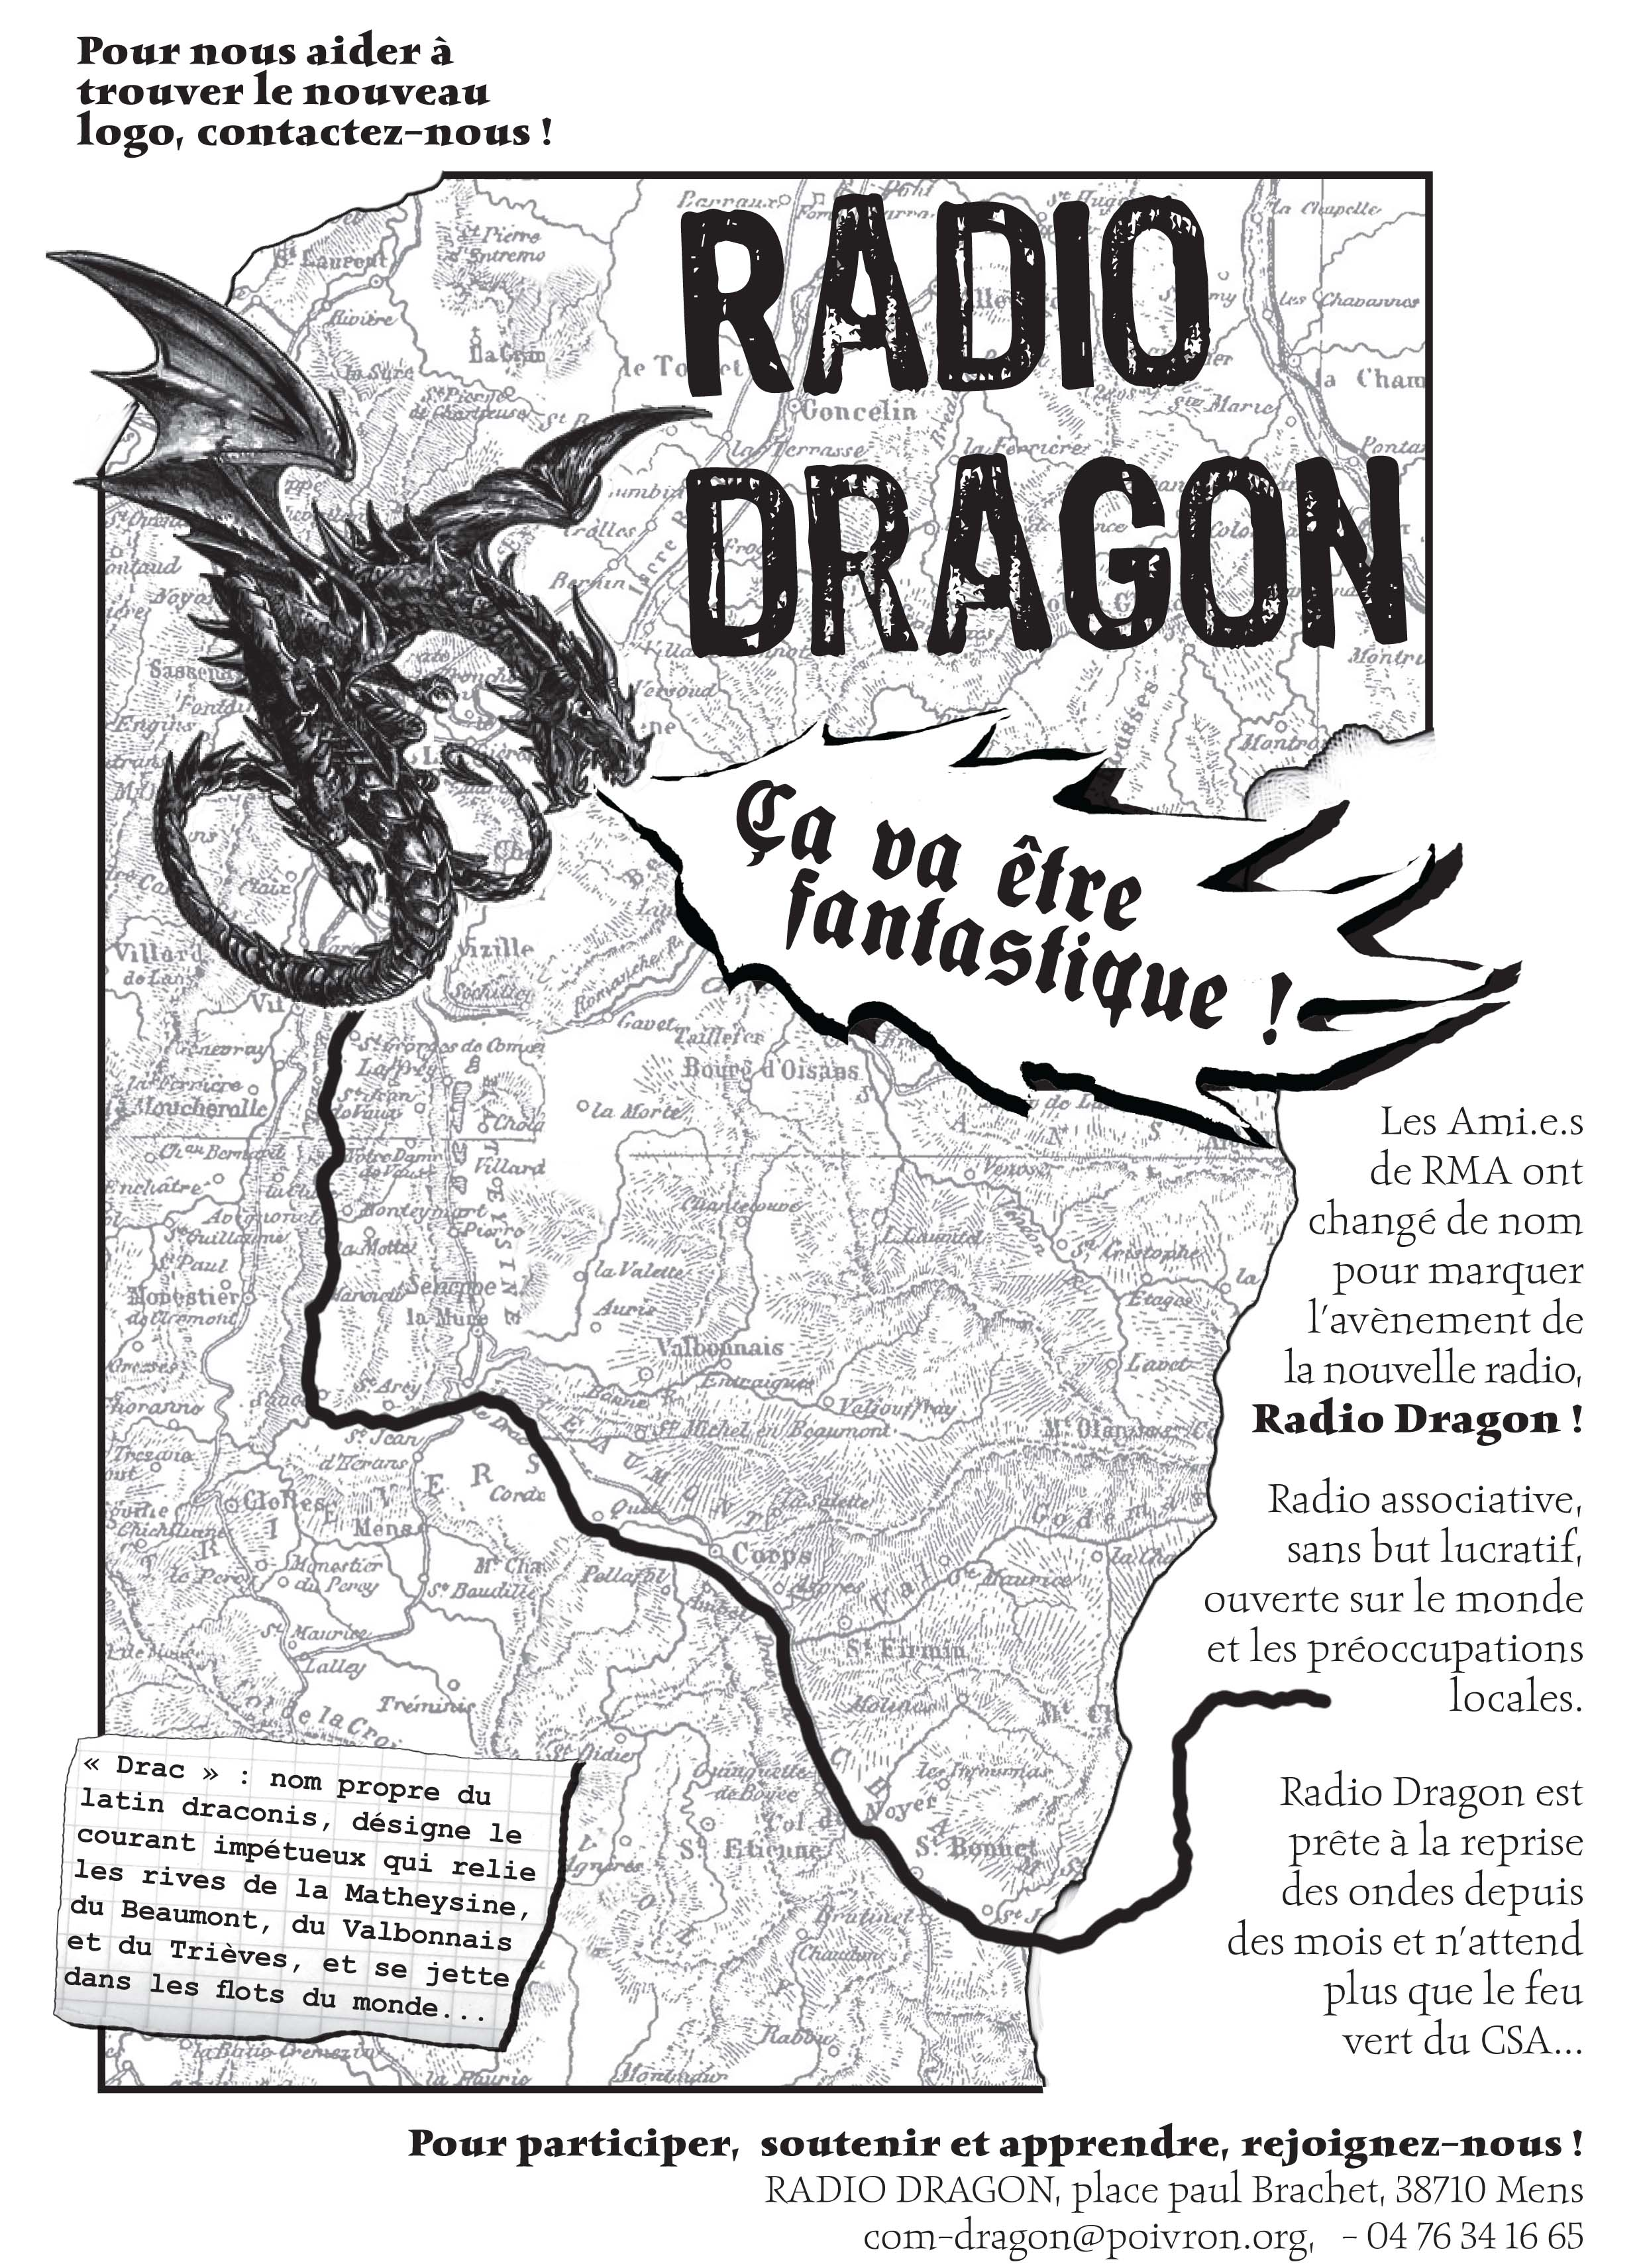 2014-06-01-radiodragon-fantastique